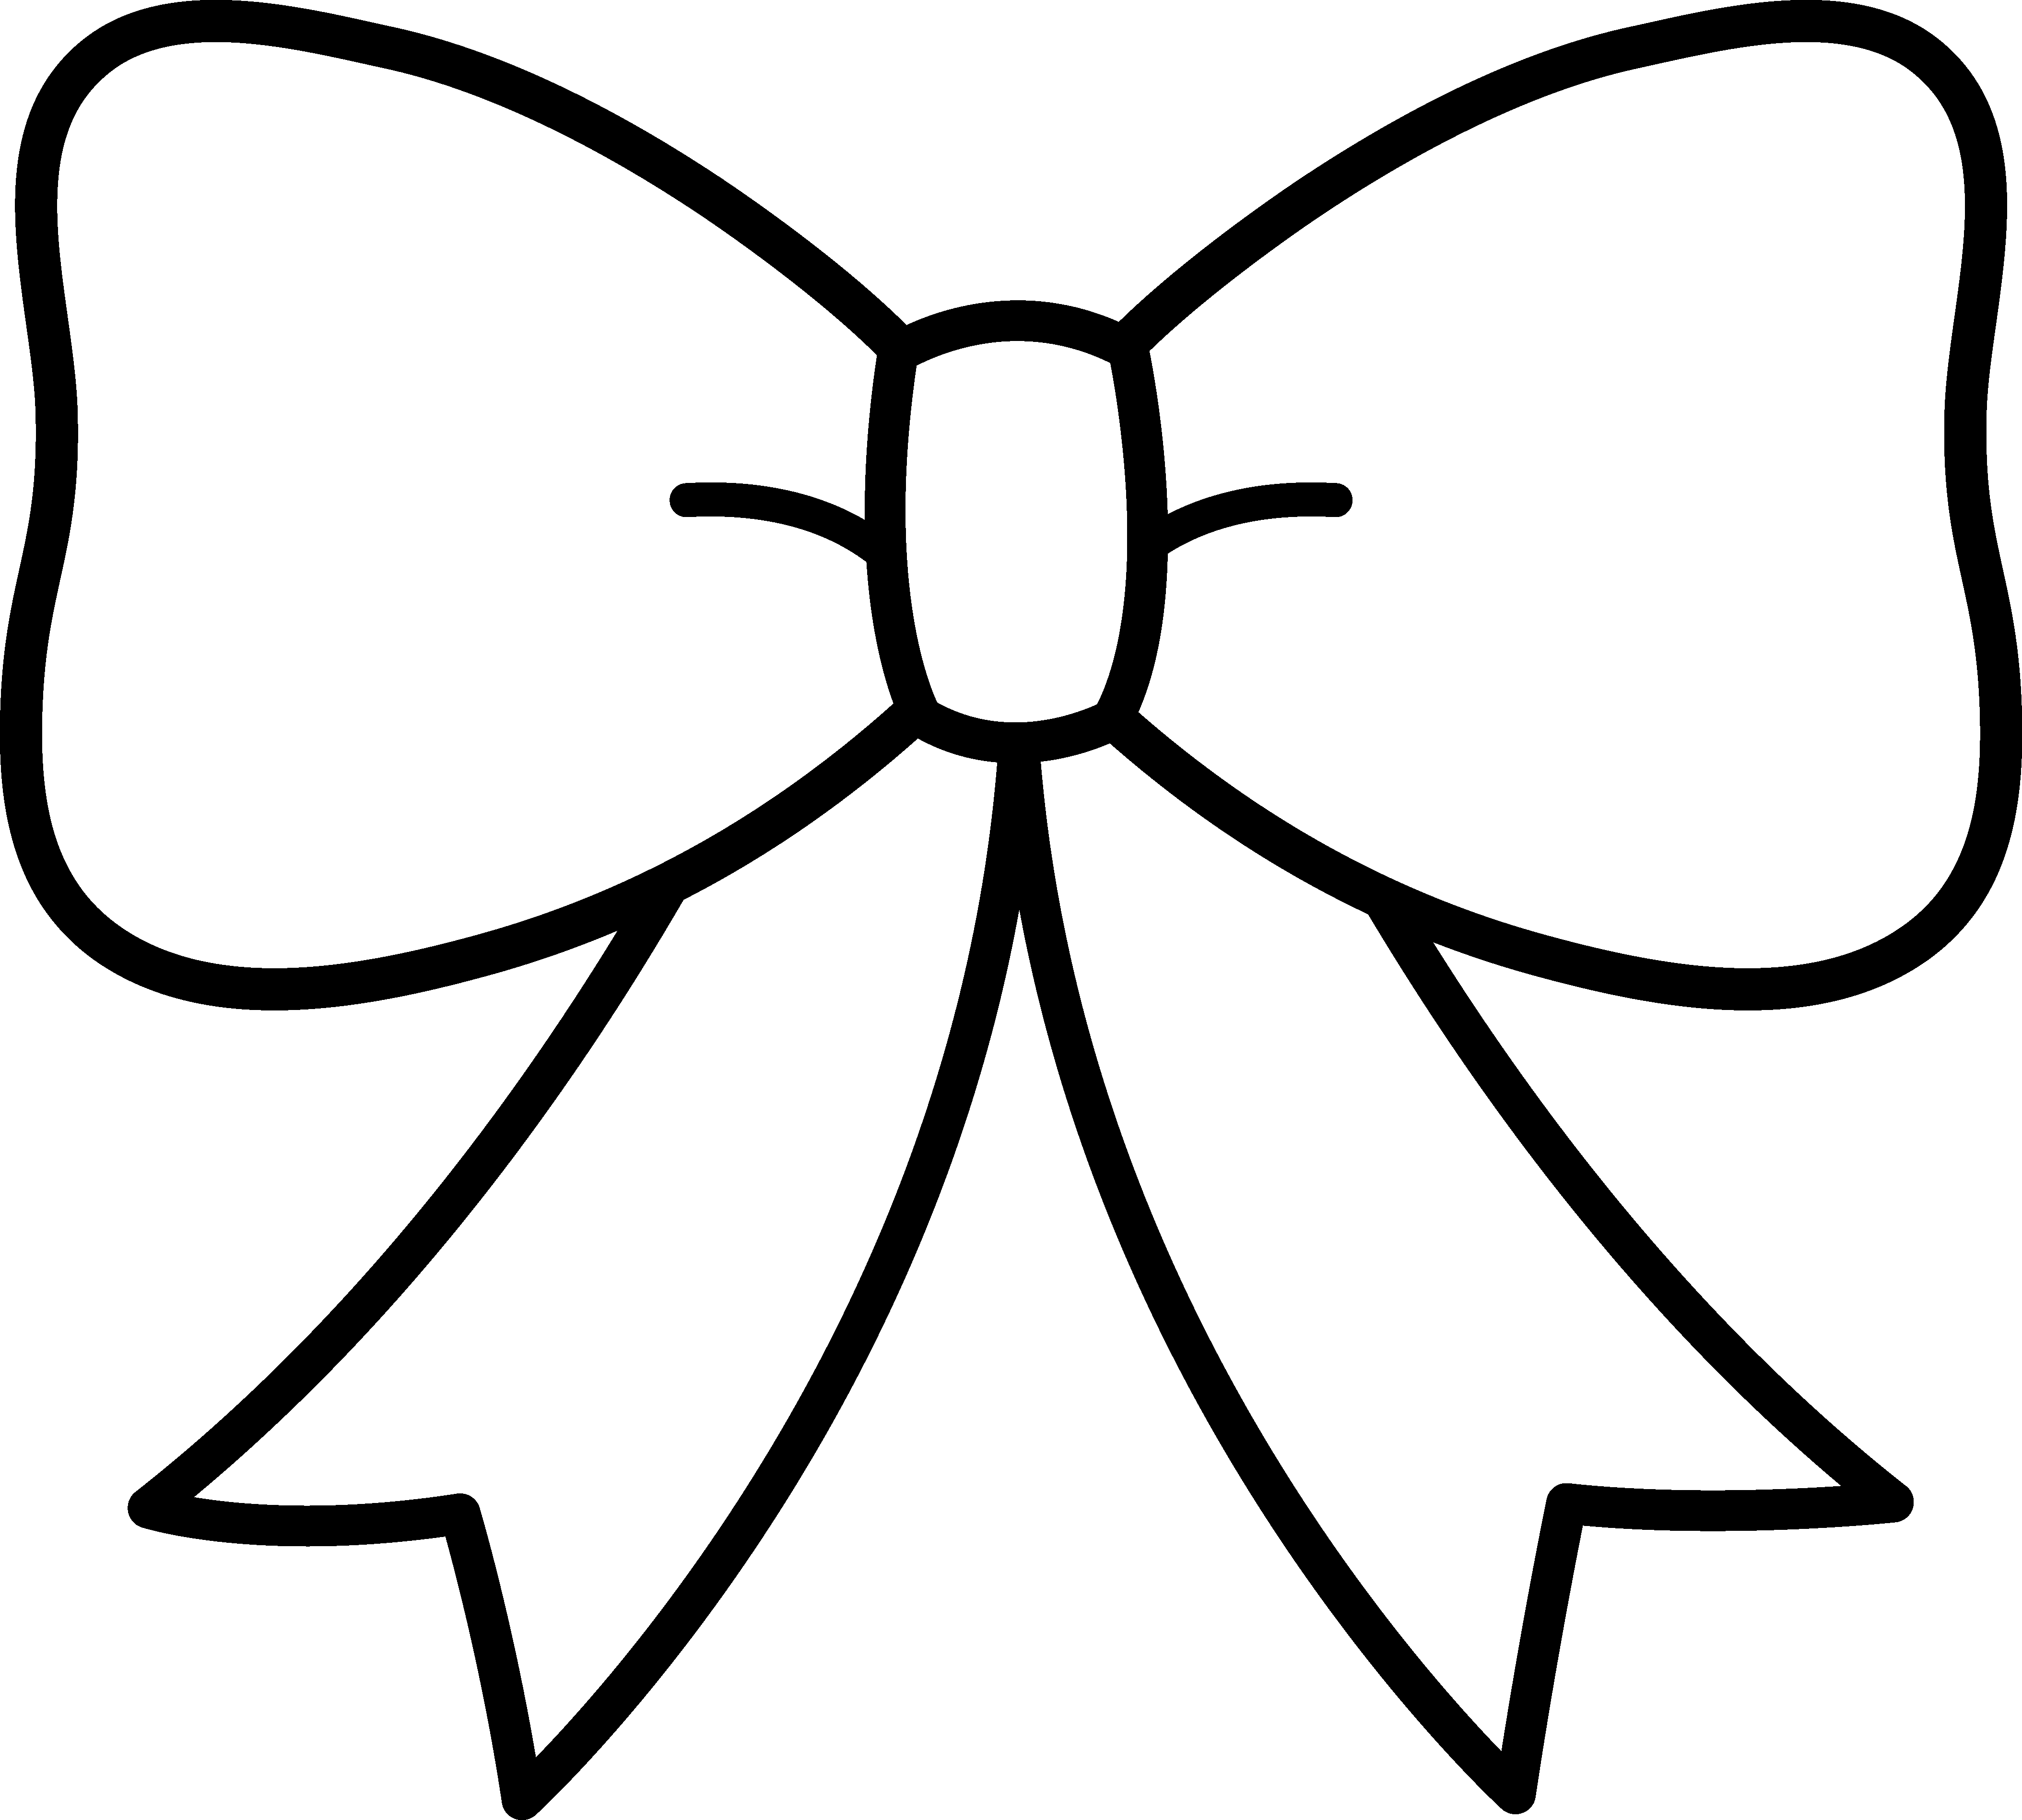 Bow clipart black and white free clipart-Bow clipart black and white free clipart images 3-6